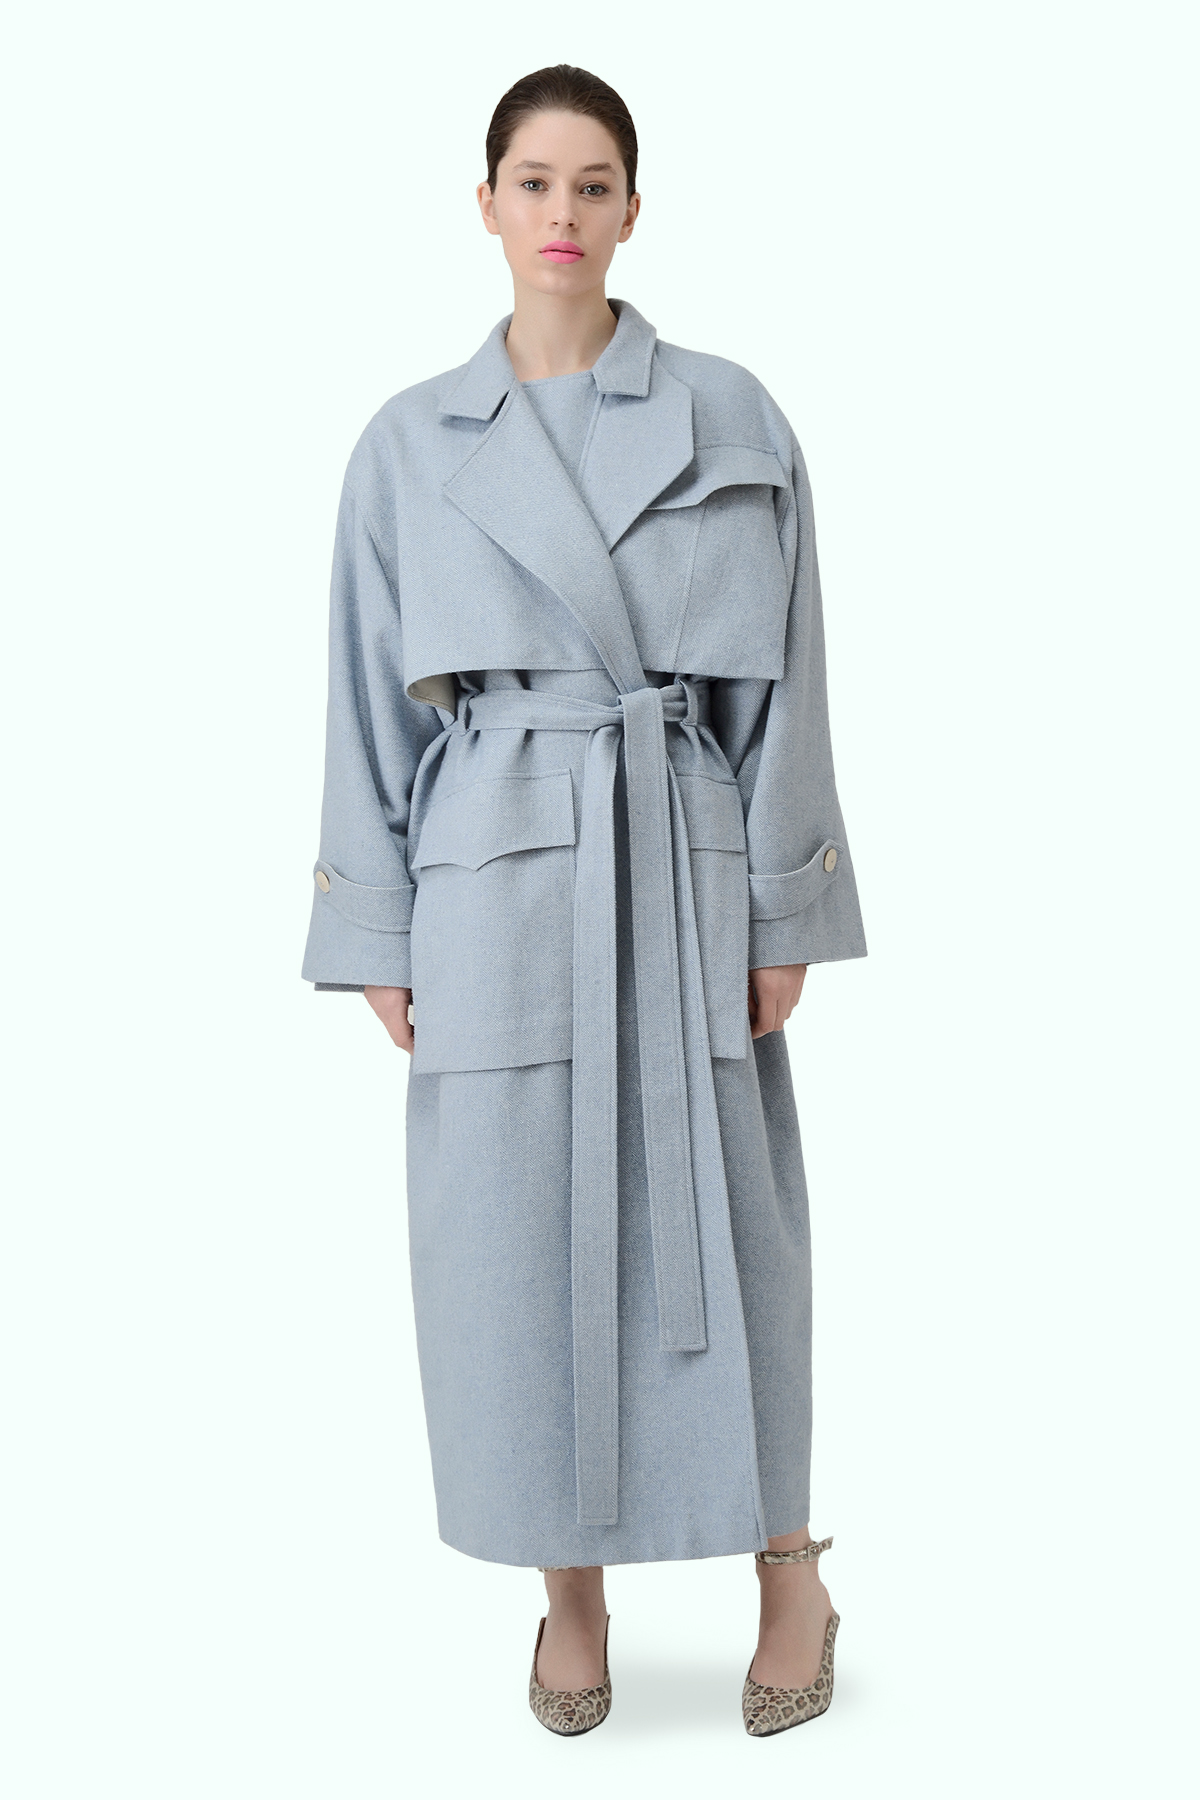 Blue tweed trench coat with multiple pockets